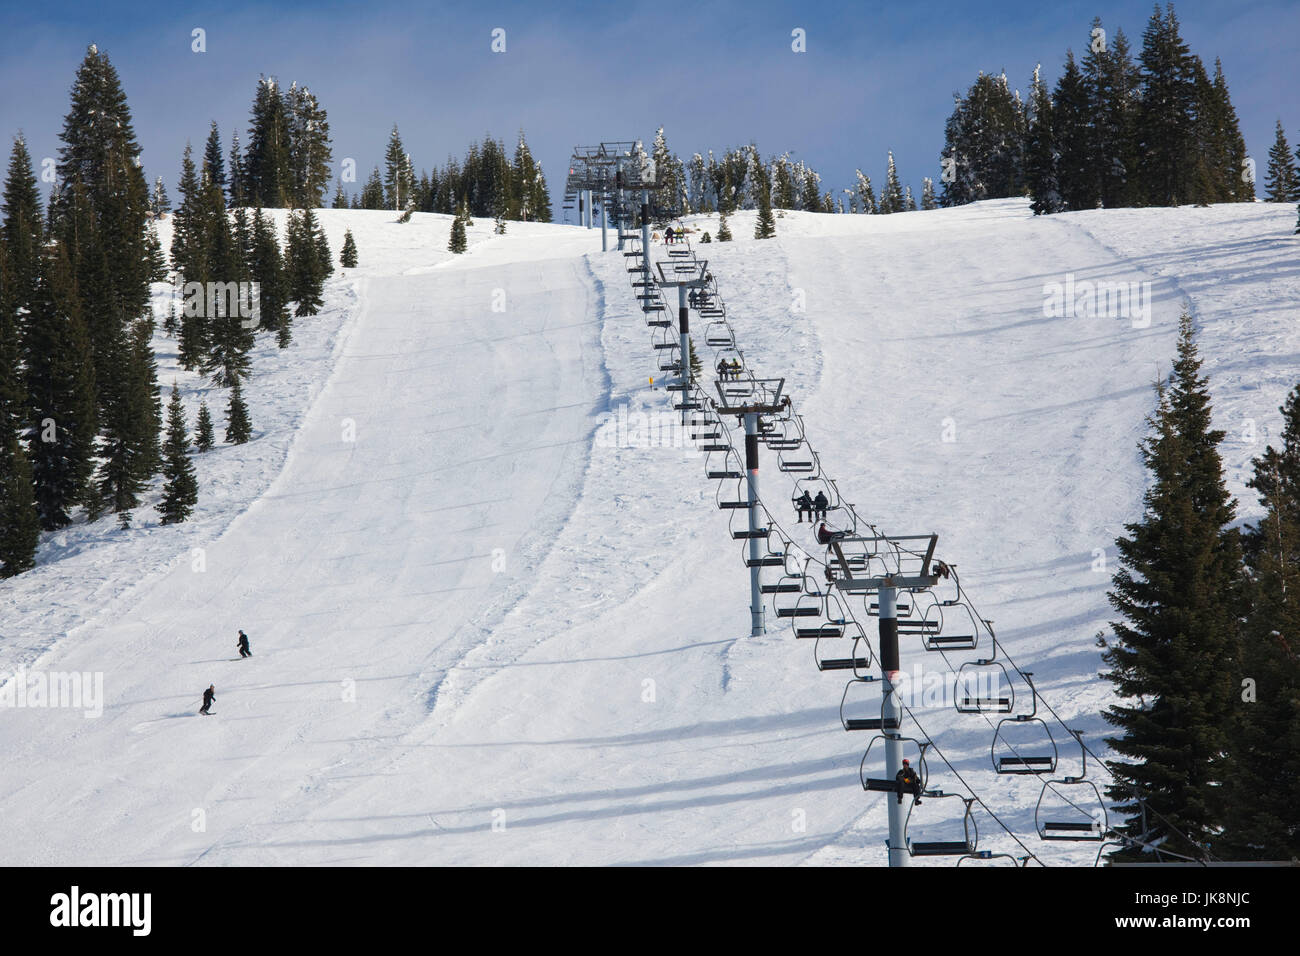 USA, California, Northern California, Northern Mountains, Mount Shasta, Mount Shasta Ski Area - Stock Image